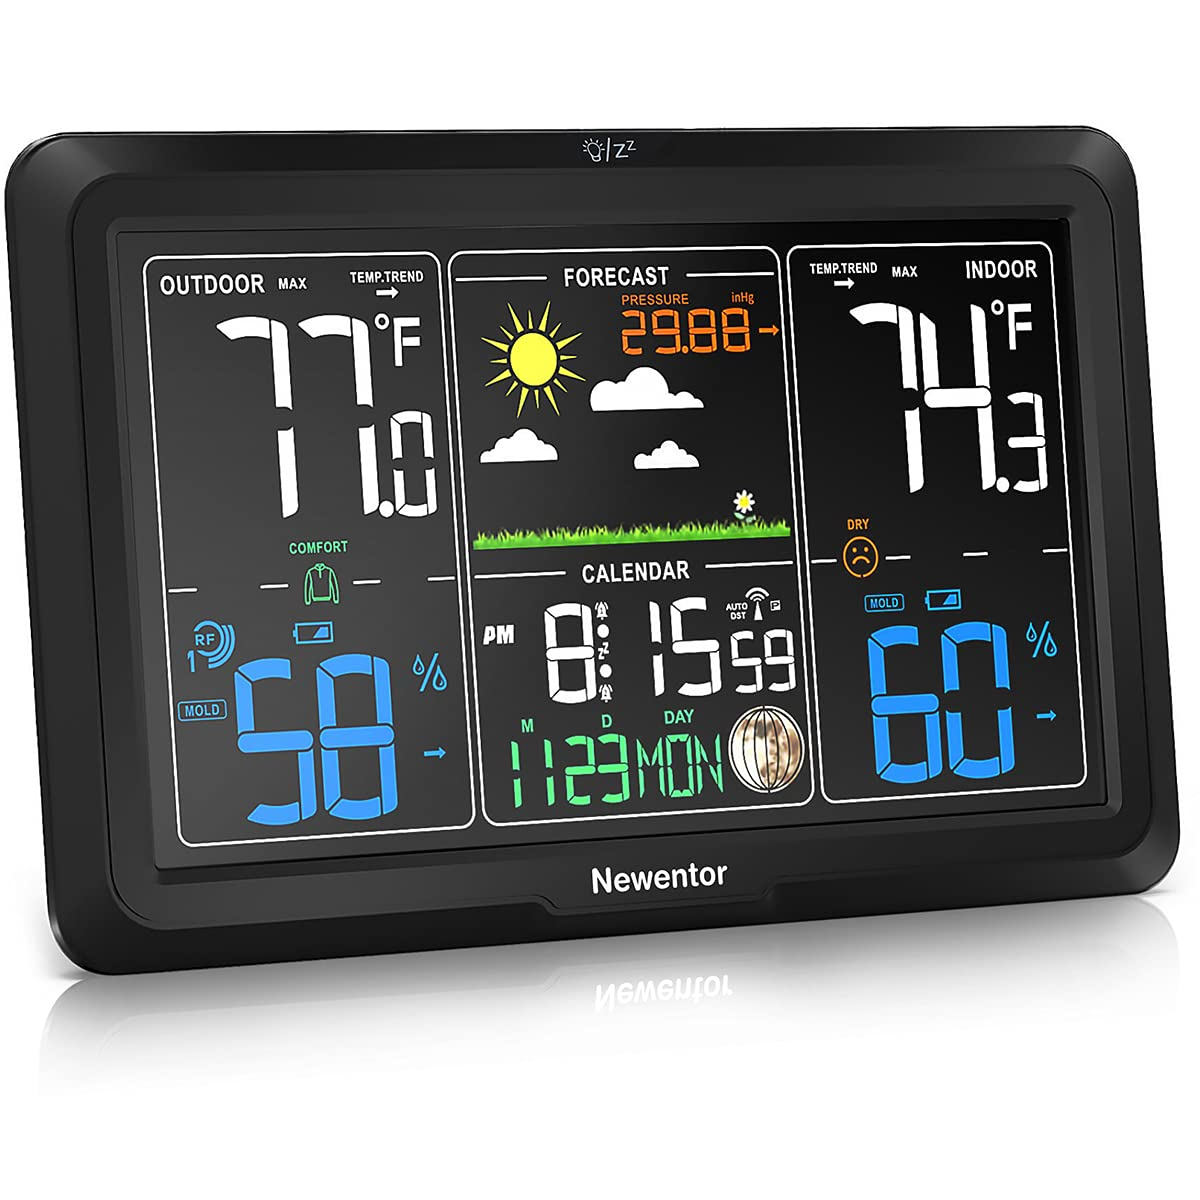 Newentor Weather Station Wireless Indoor Outdoor Thermometer, Atomic Clocks with Temperature Humidity, Large Color Display Weather Monitor with Calendar and Adjustable Backlight for Home